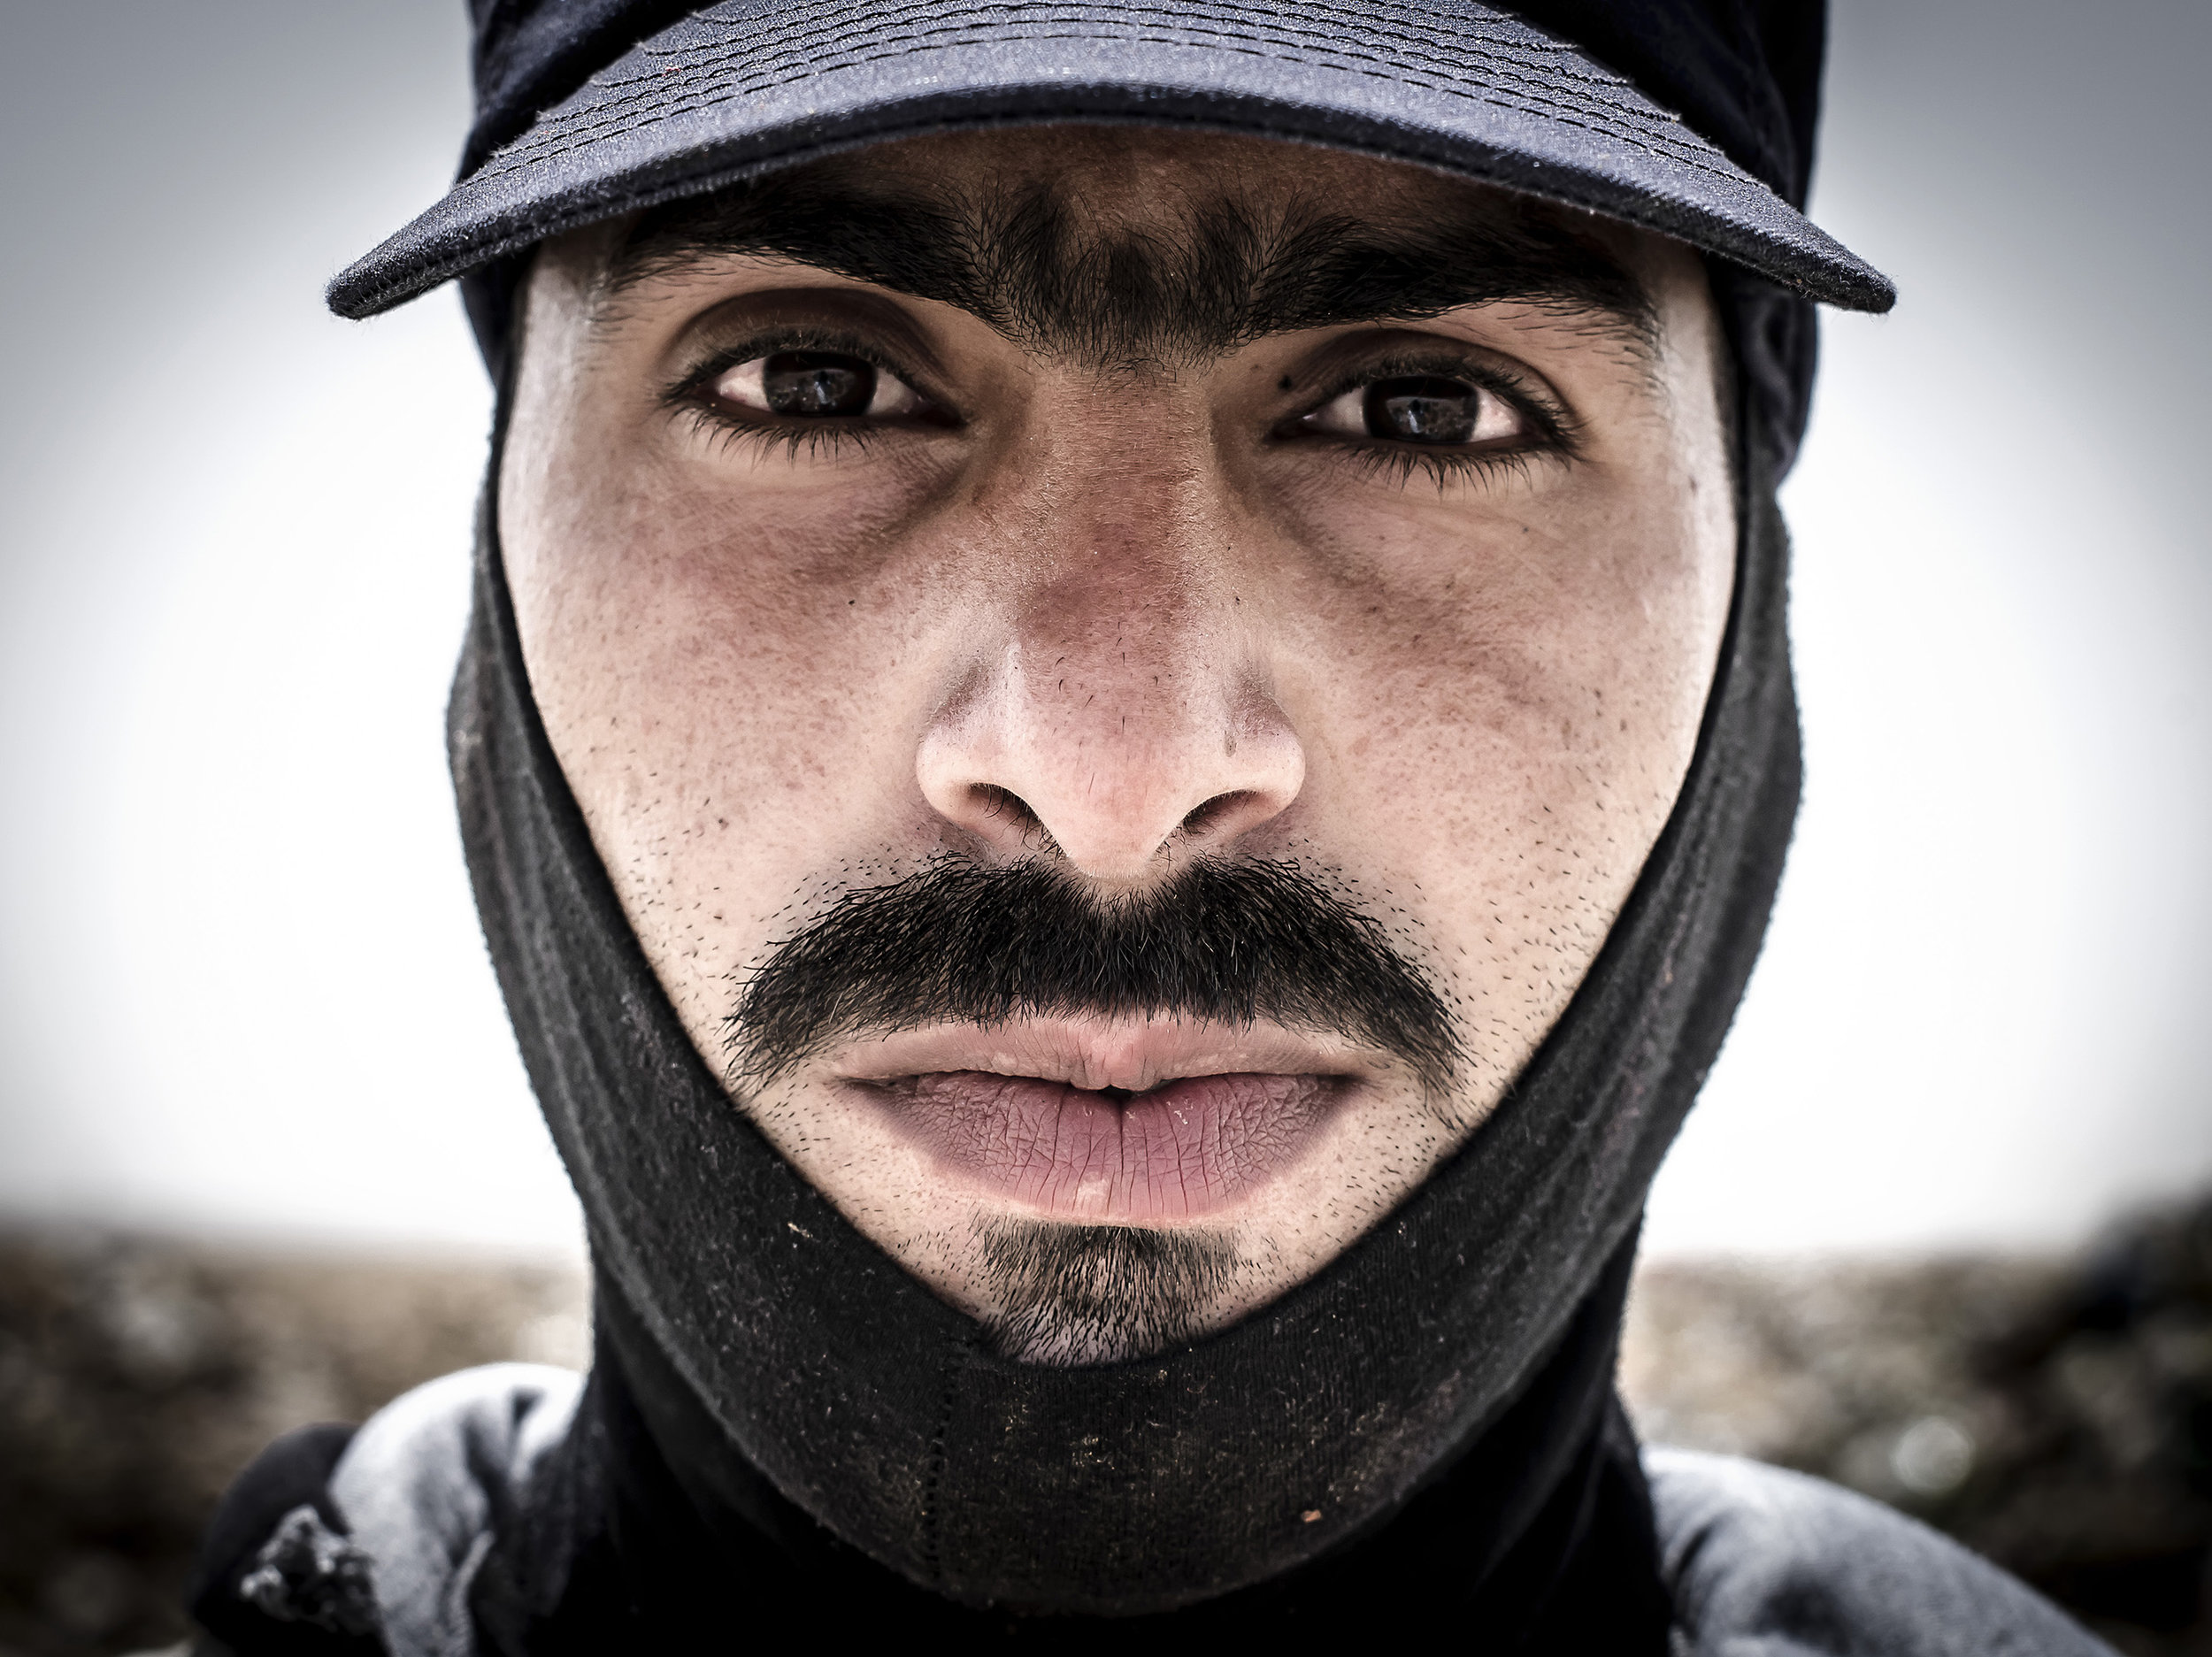 Mohammad Badawi, 33 years old working at the Huseyneya dumpsite in Mafraq in Jordan.